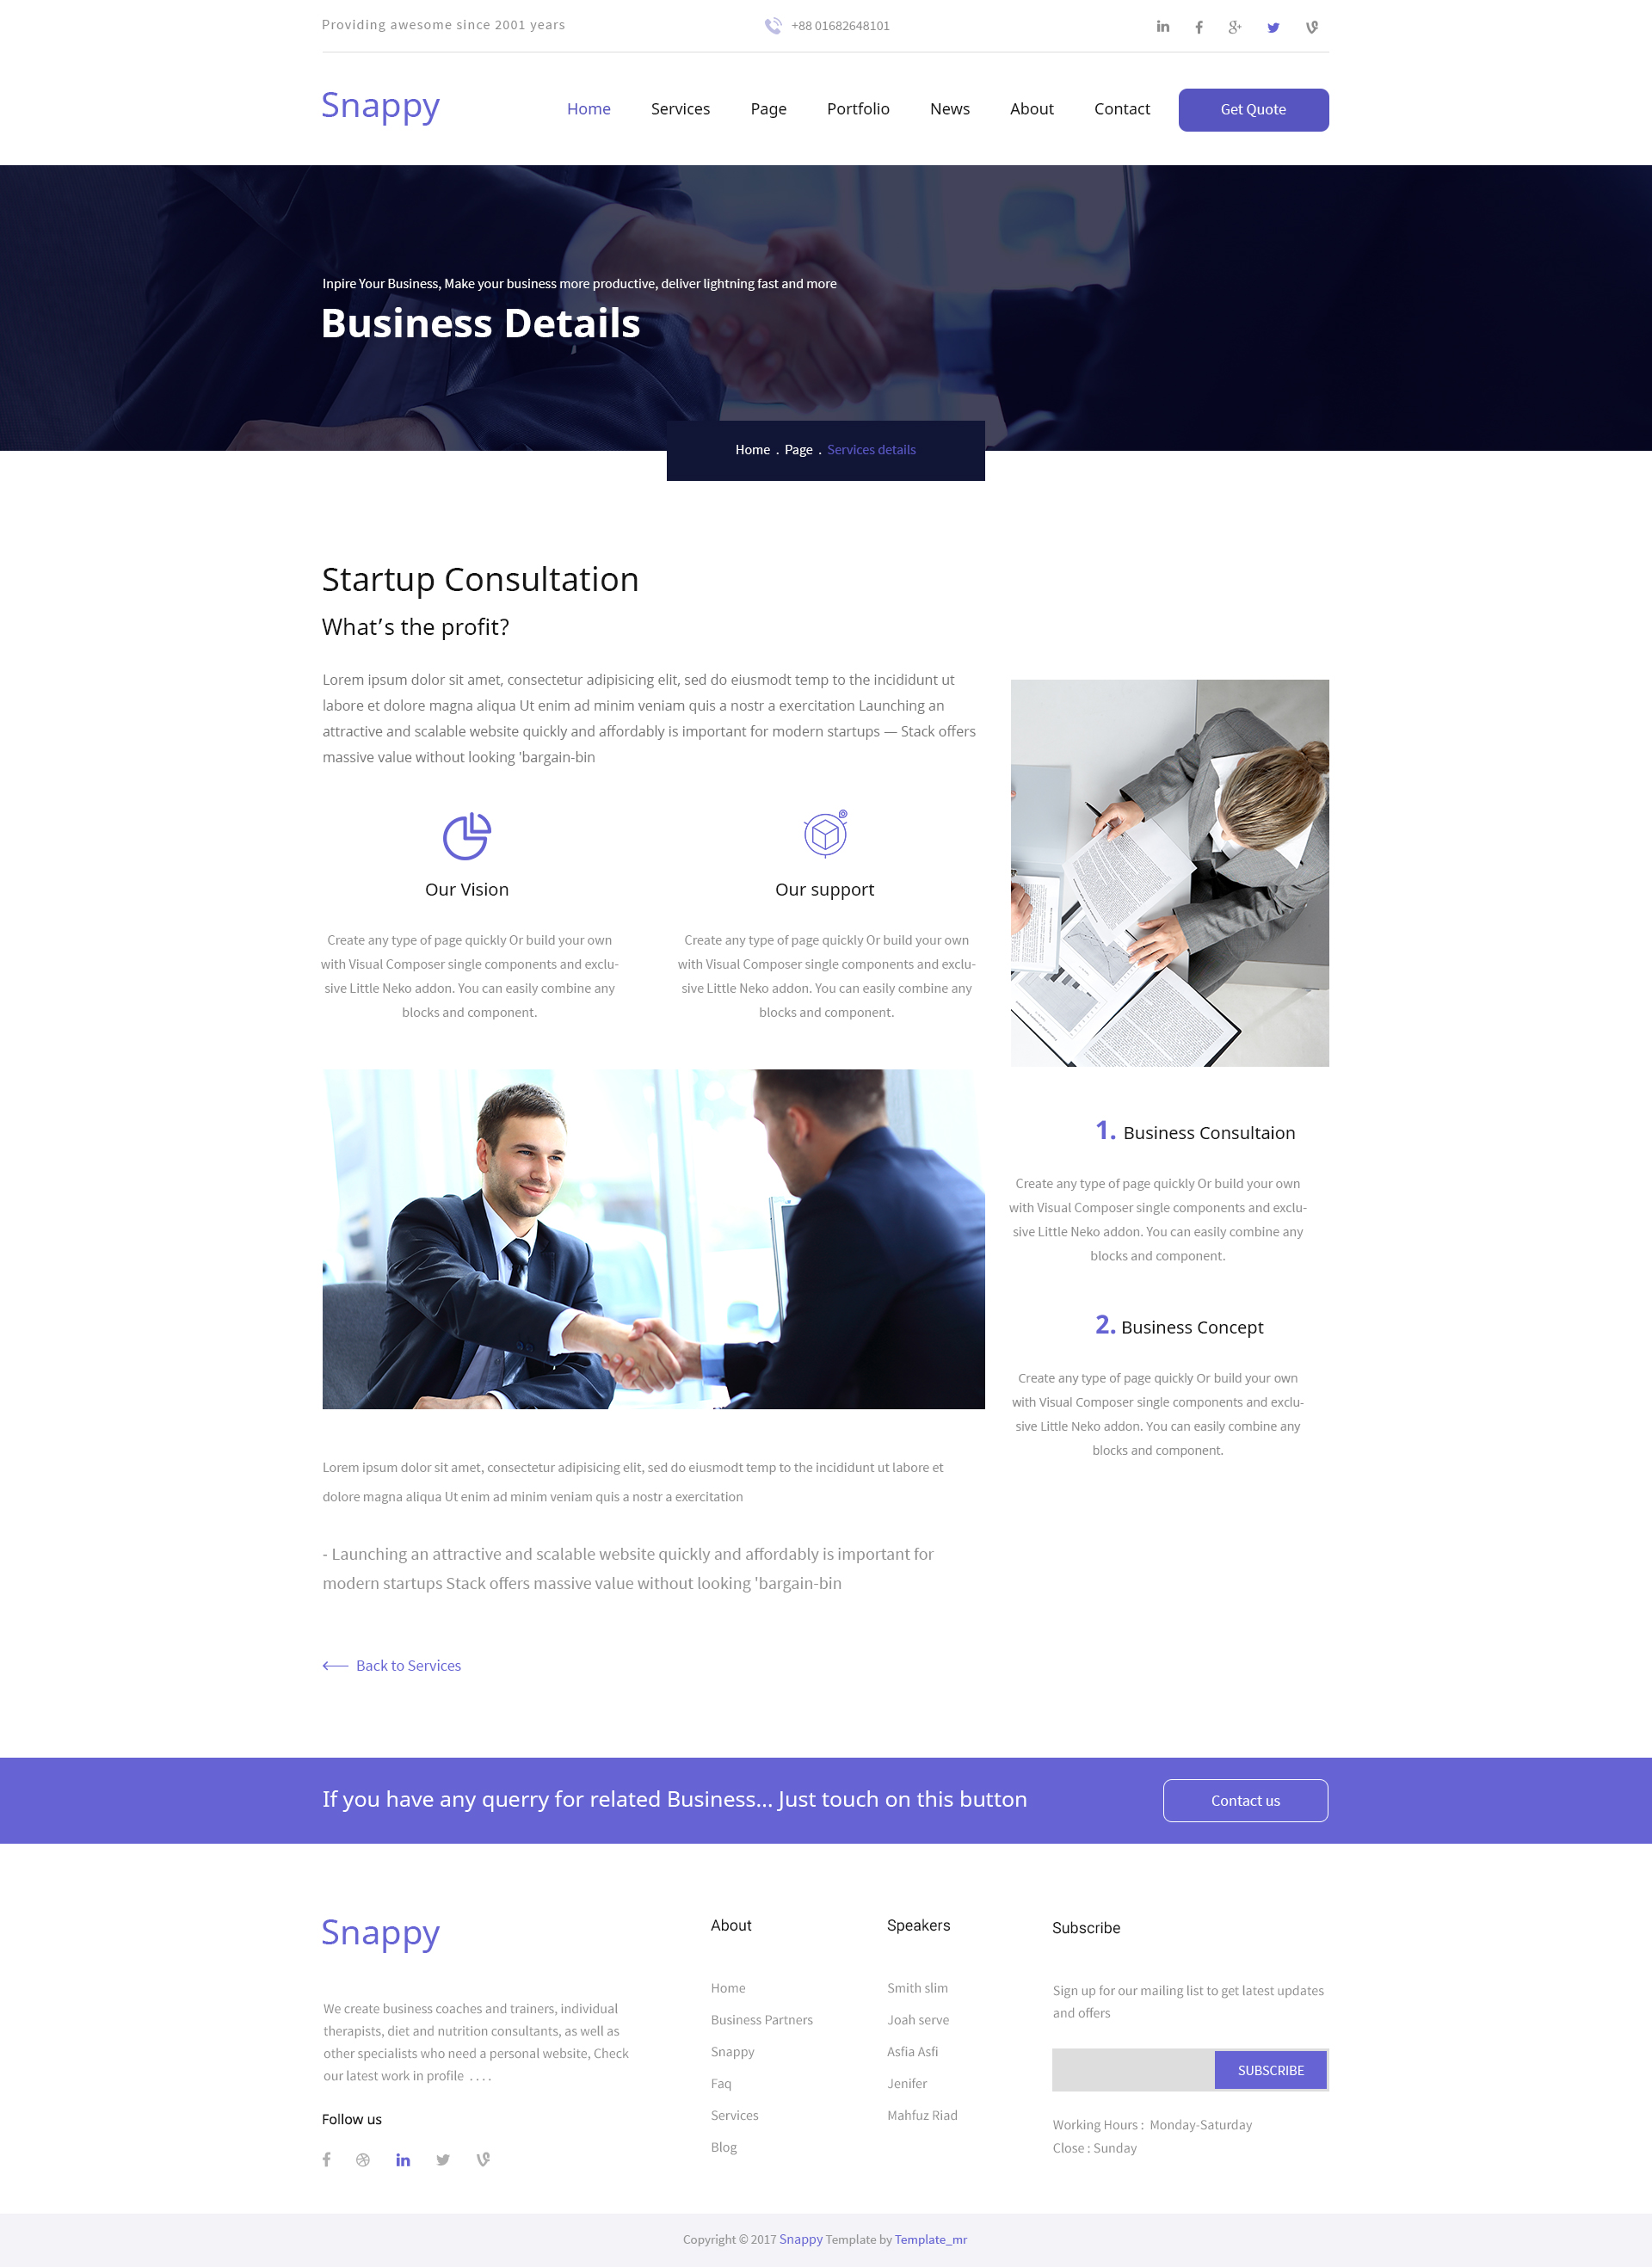 Snappy easy startup business psd template by templatemr themeforest snappy easy startup business psd template wajeb Choice Image